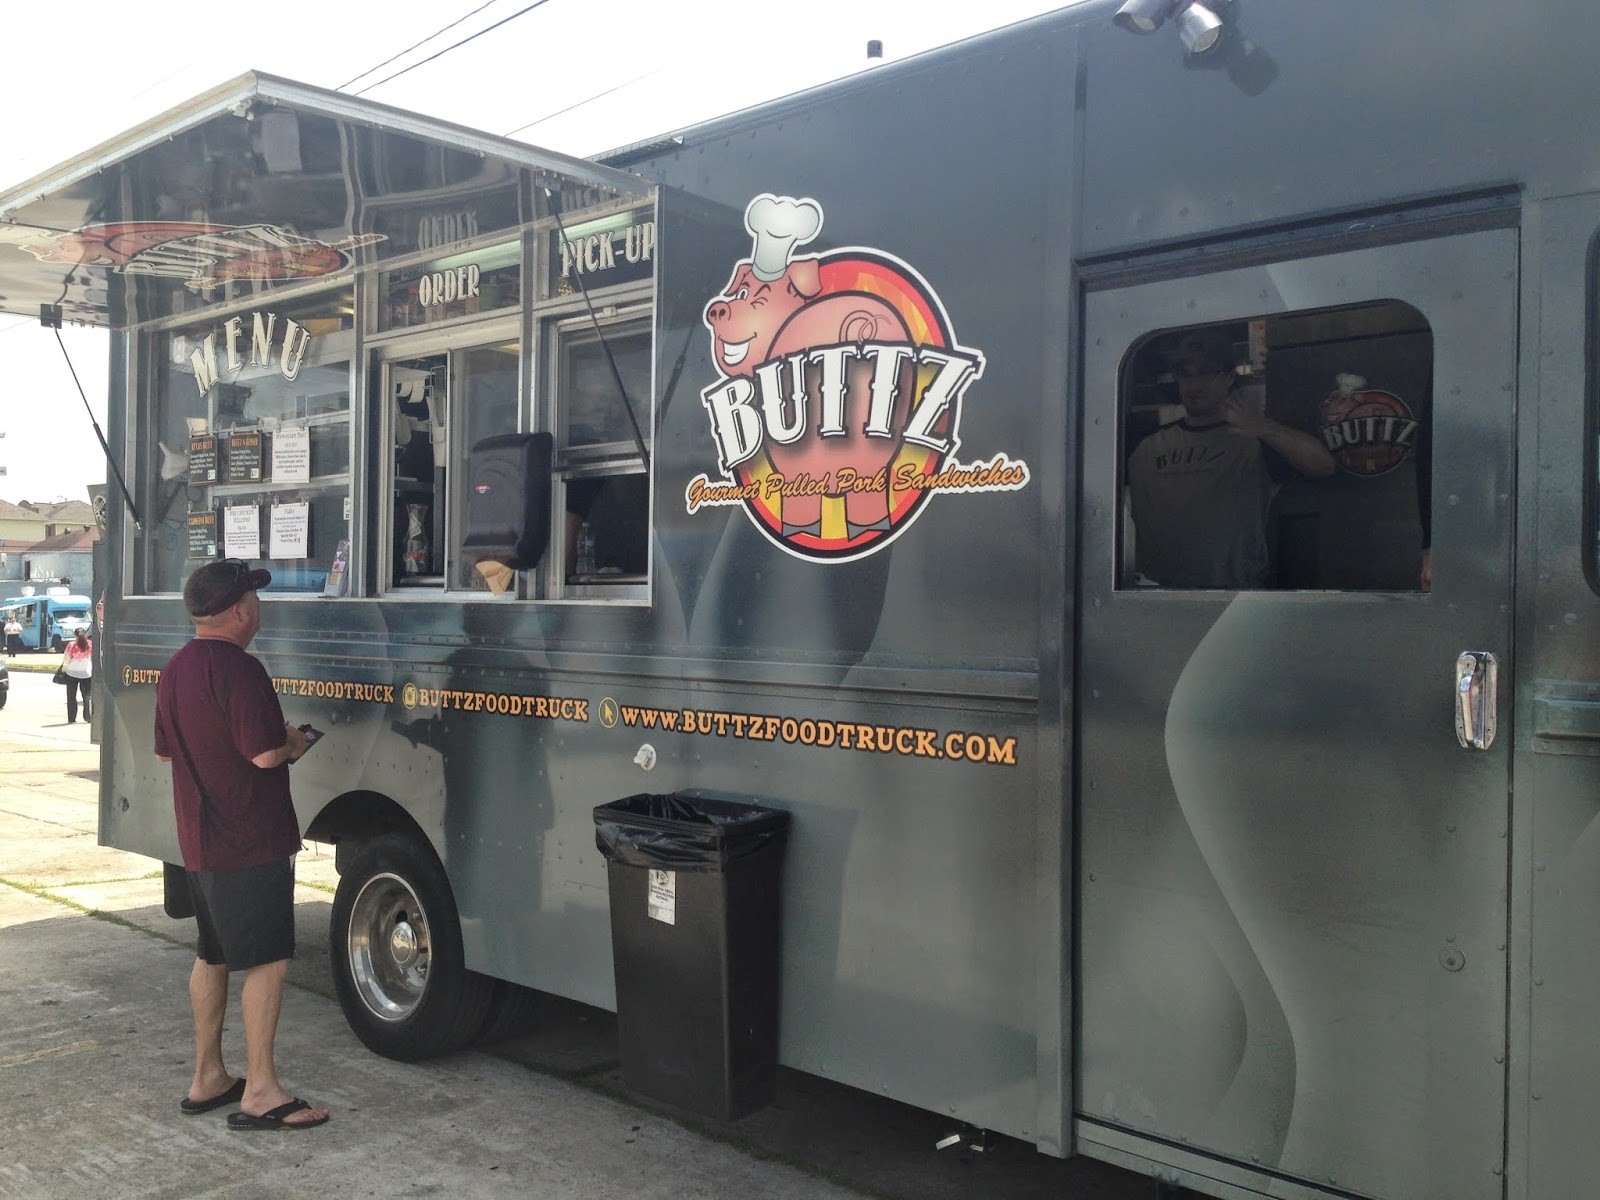 Buttz Food Truck, Houston TX